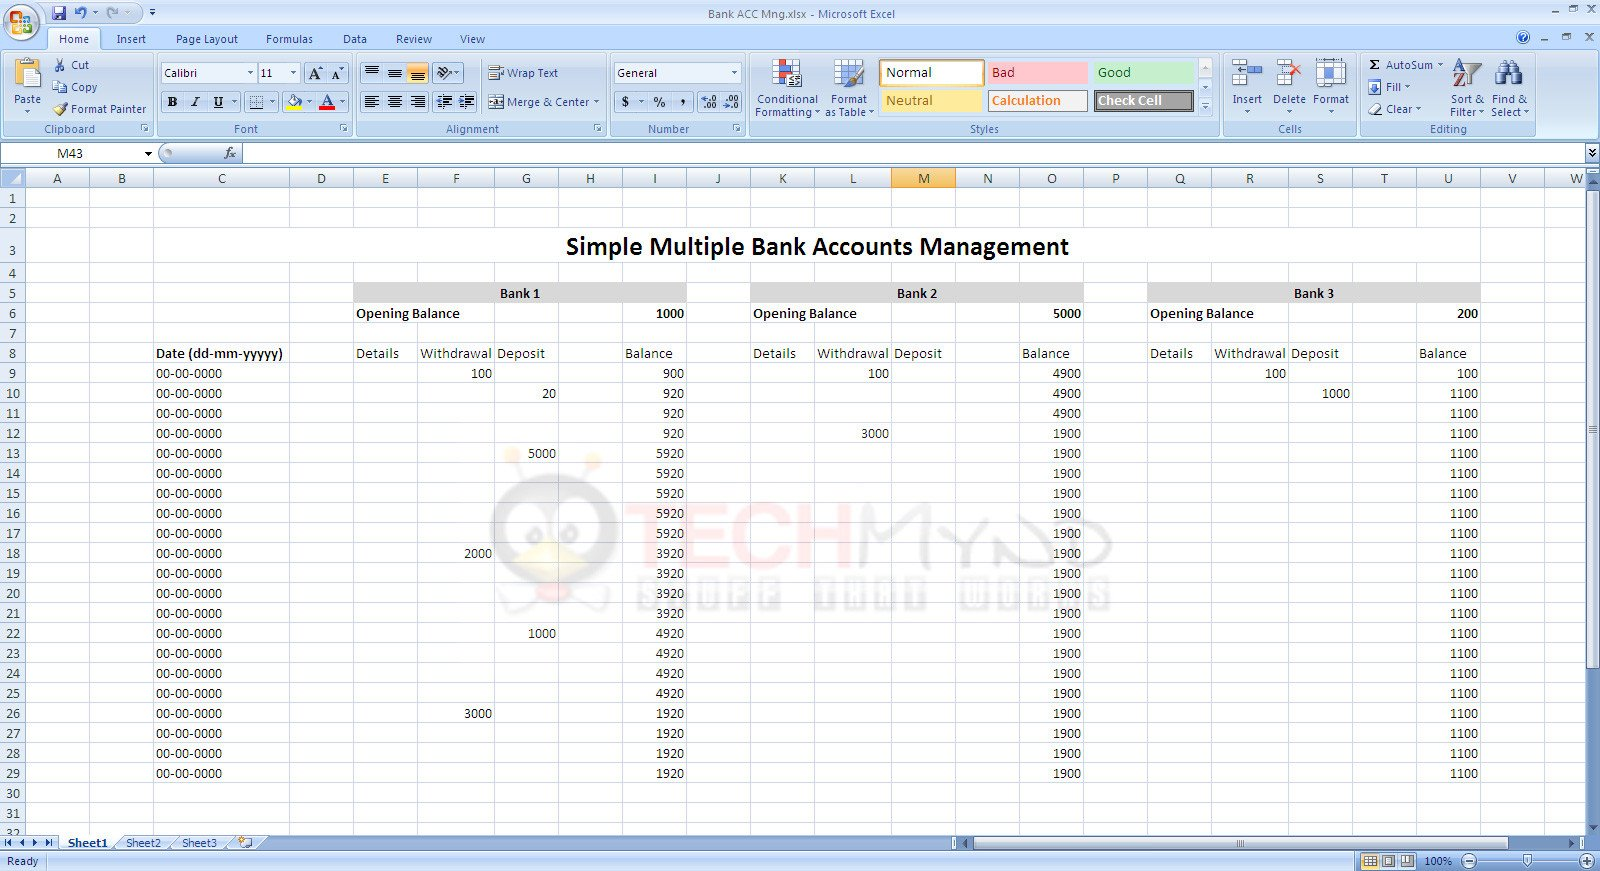 Excel Banking Spreadsheet Manage Bank Accounts Using Simple Excel Sheet Freebies